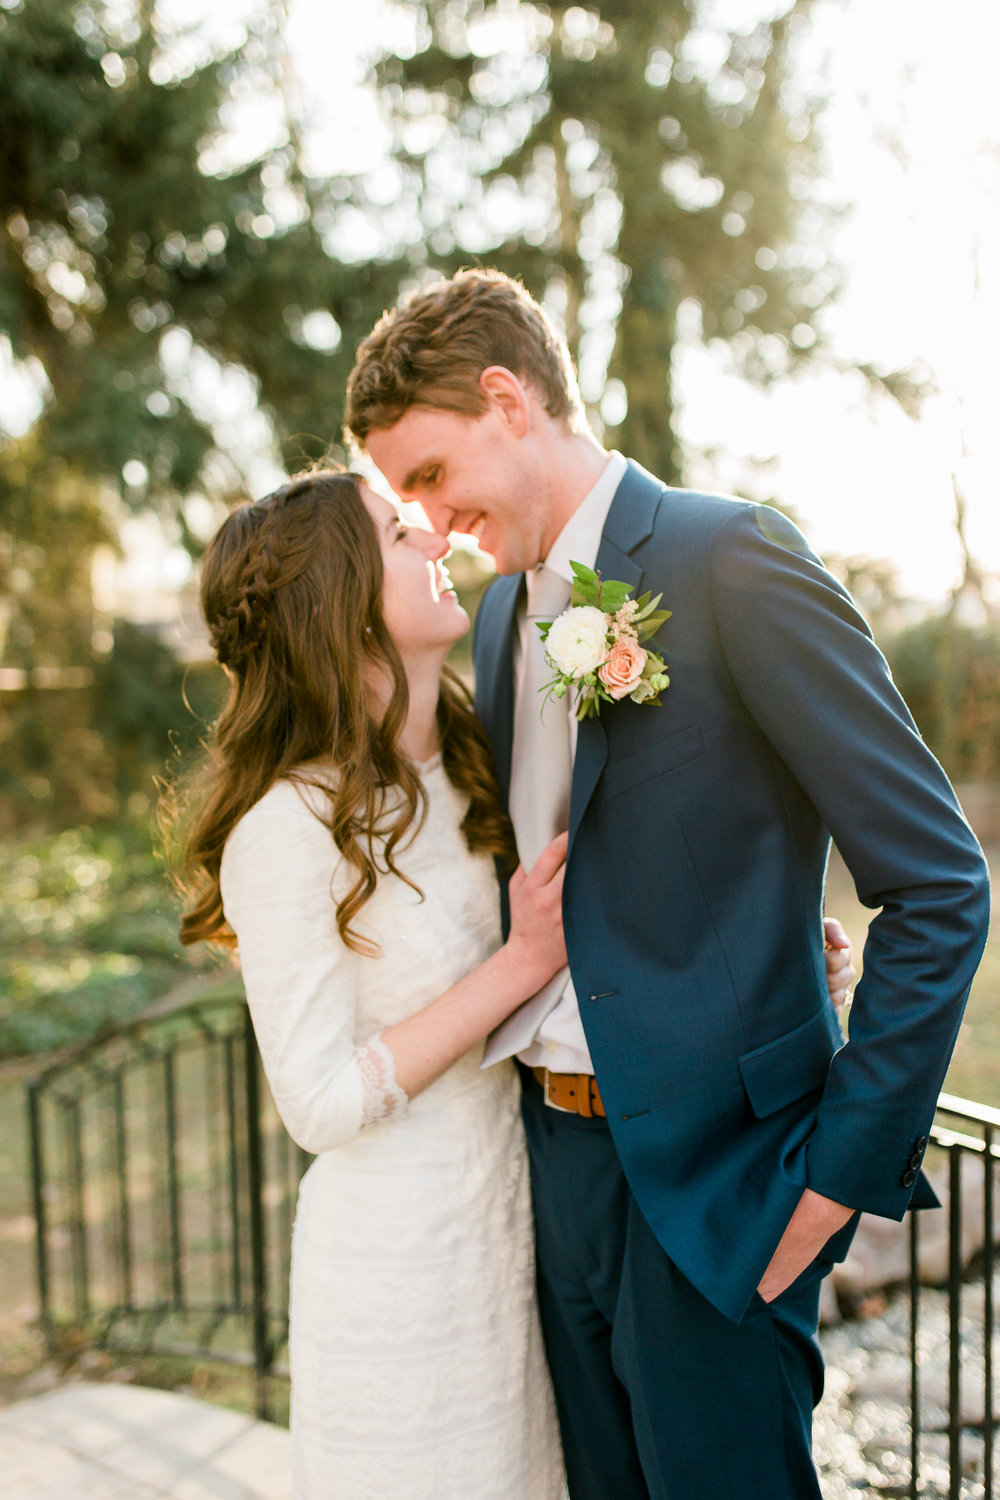 Eliza + Cody Bridals - Utah Wedding Photographer-16.jpg